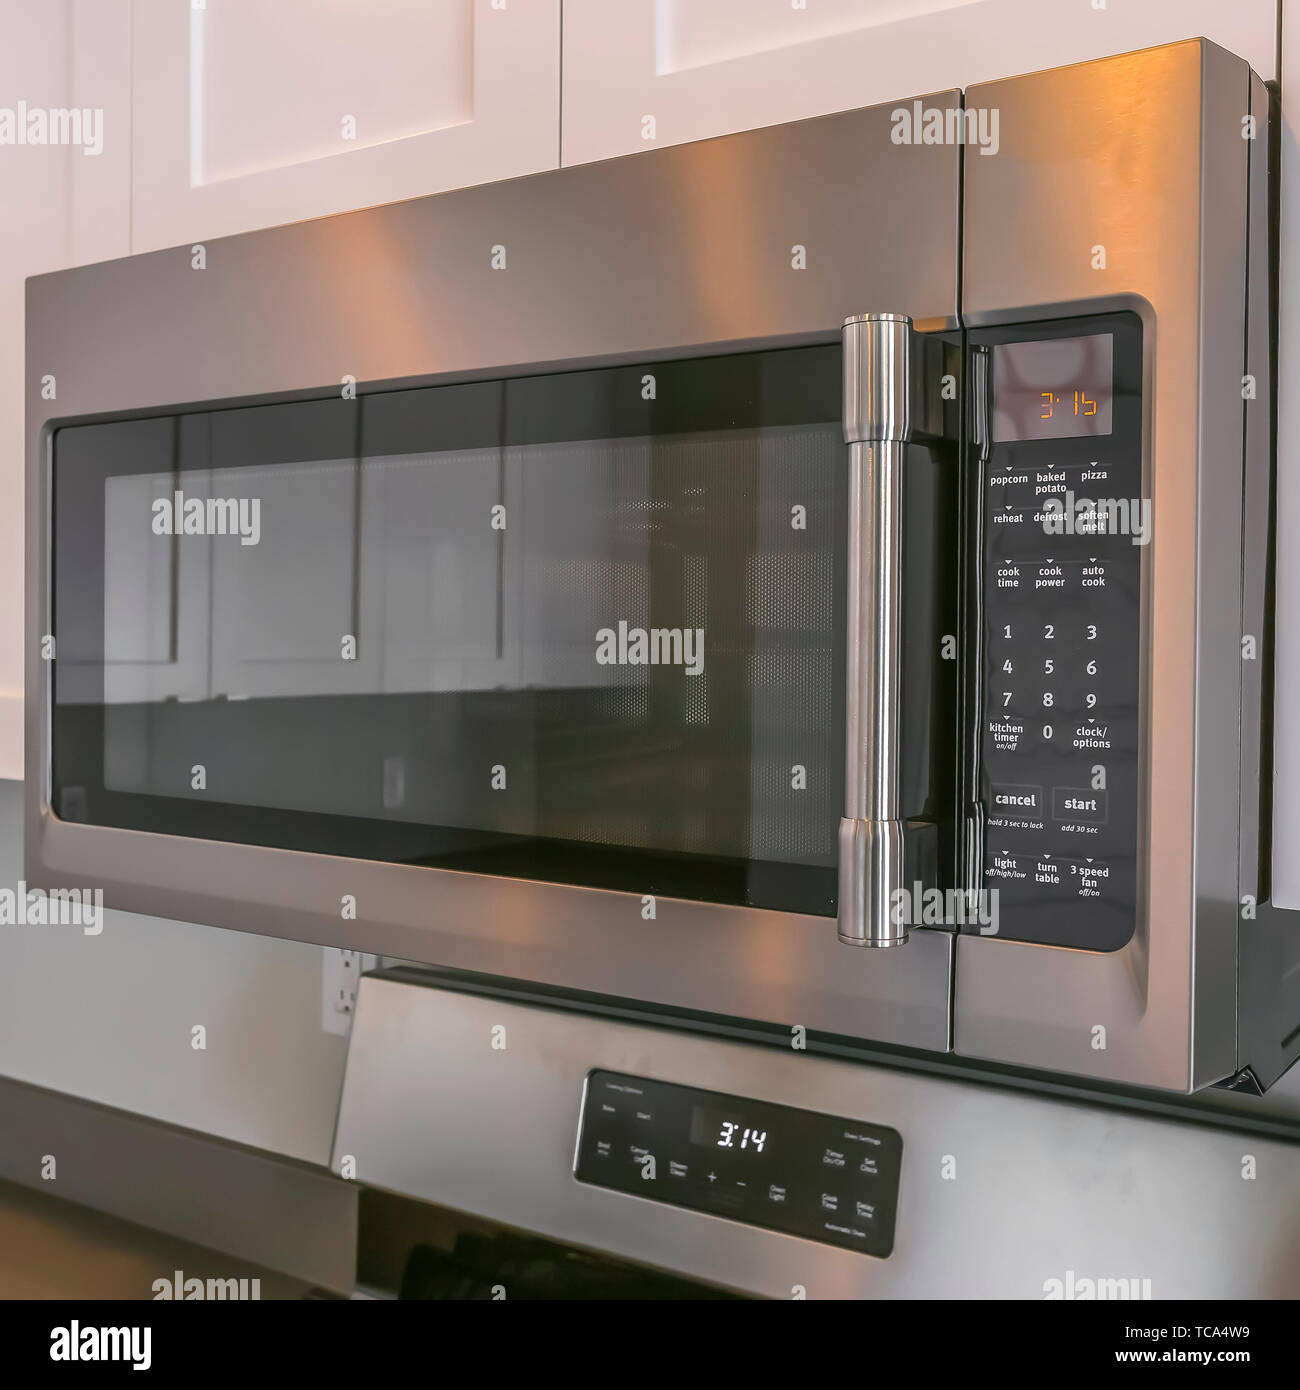 Square Close up of a microwave and white cabinets mounted on the wall of a kitchen Stock Photo